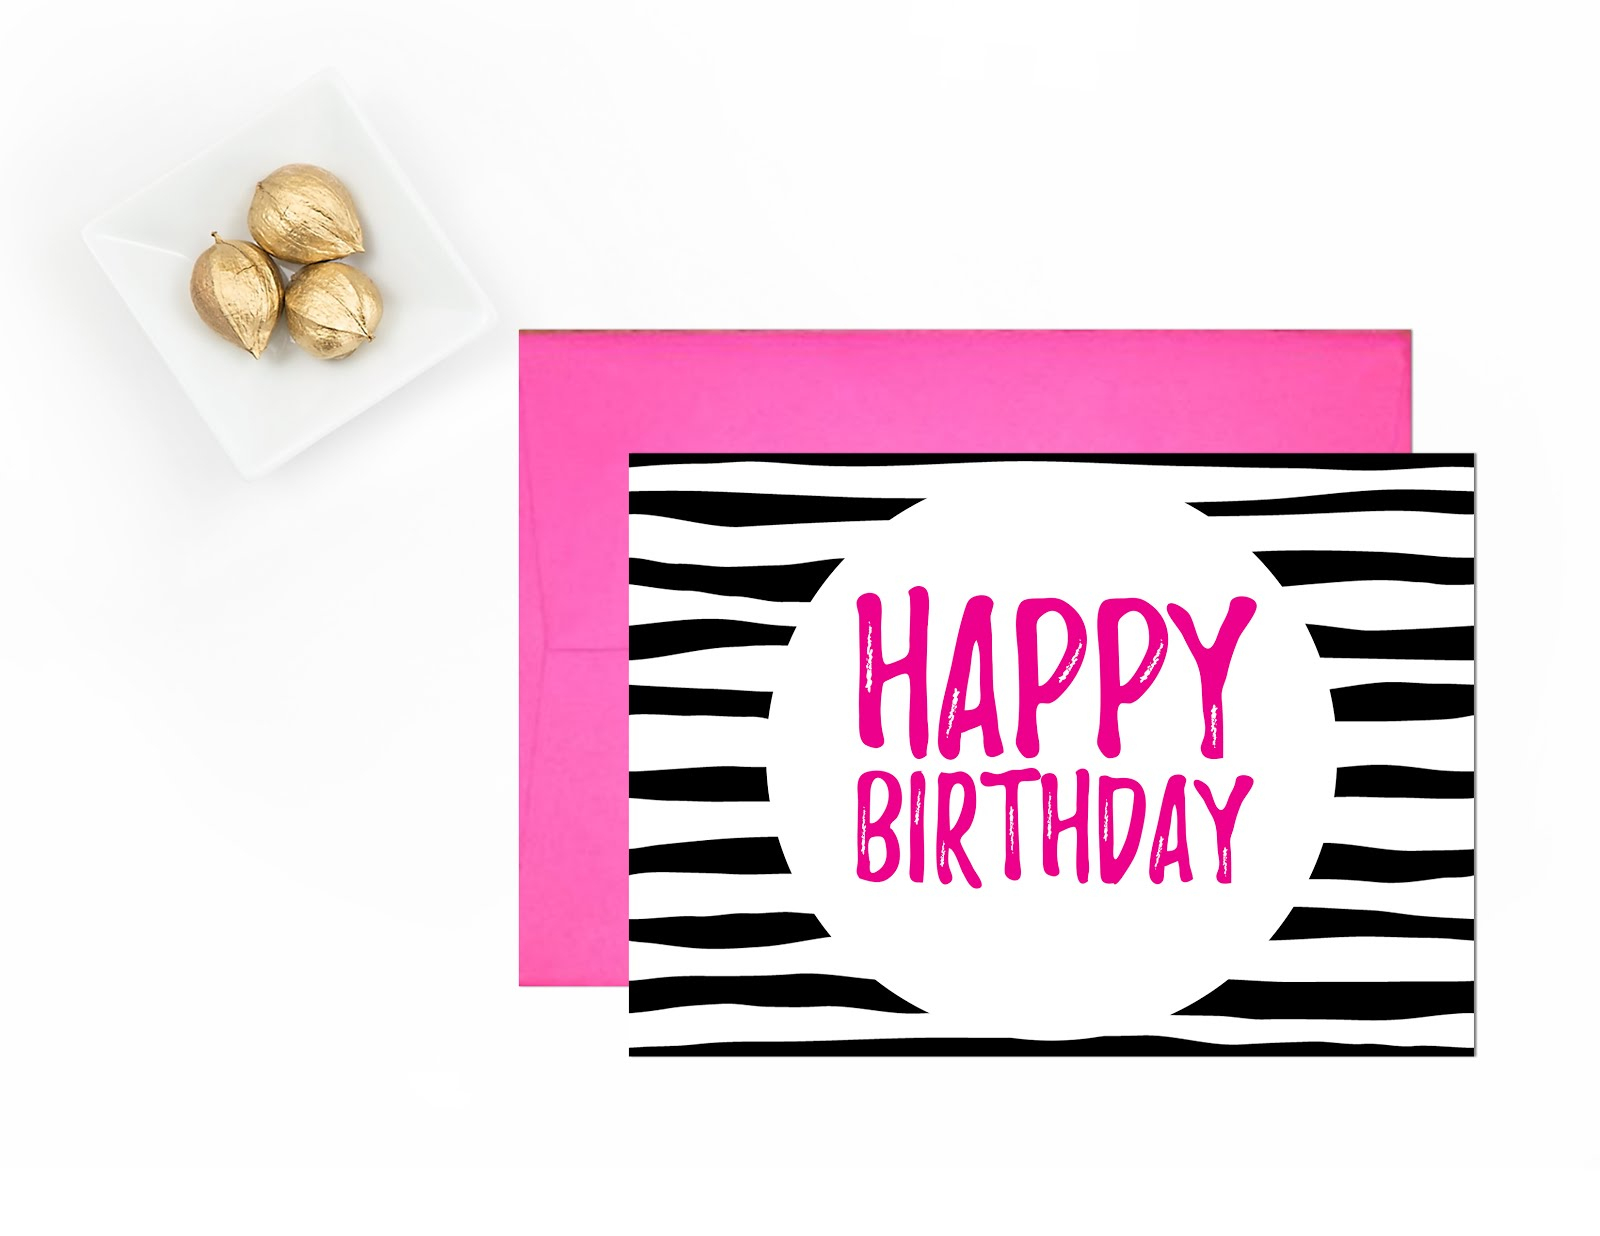 Happy Birthday   Free Printable Greeting Cards - Andree In Wonderland - Free Printable Happy Birthday Cards